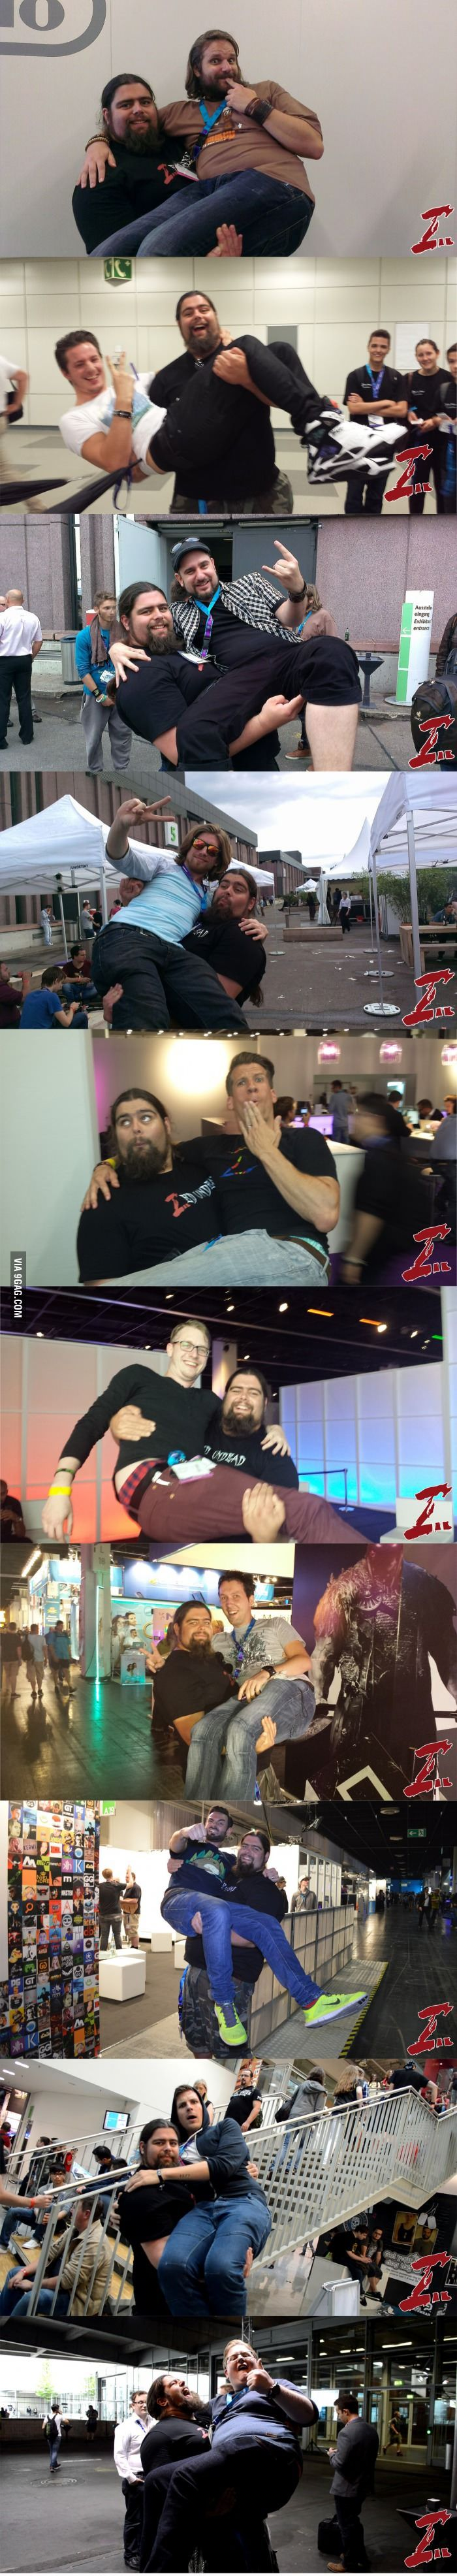 This Guy carried all German Webstars he found on the Gamescom 2014 in Cologne